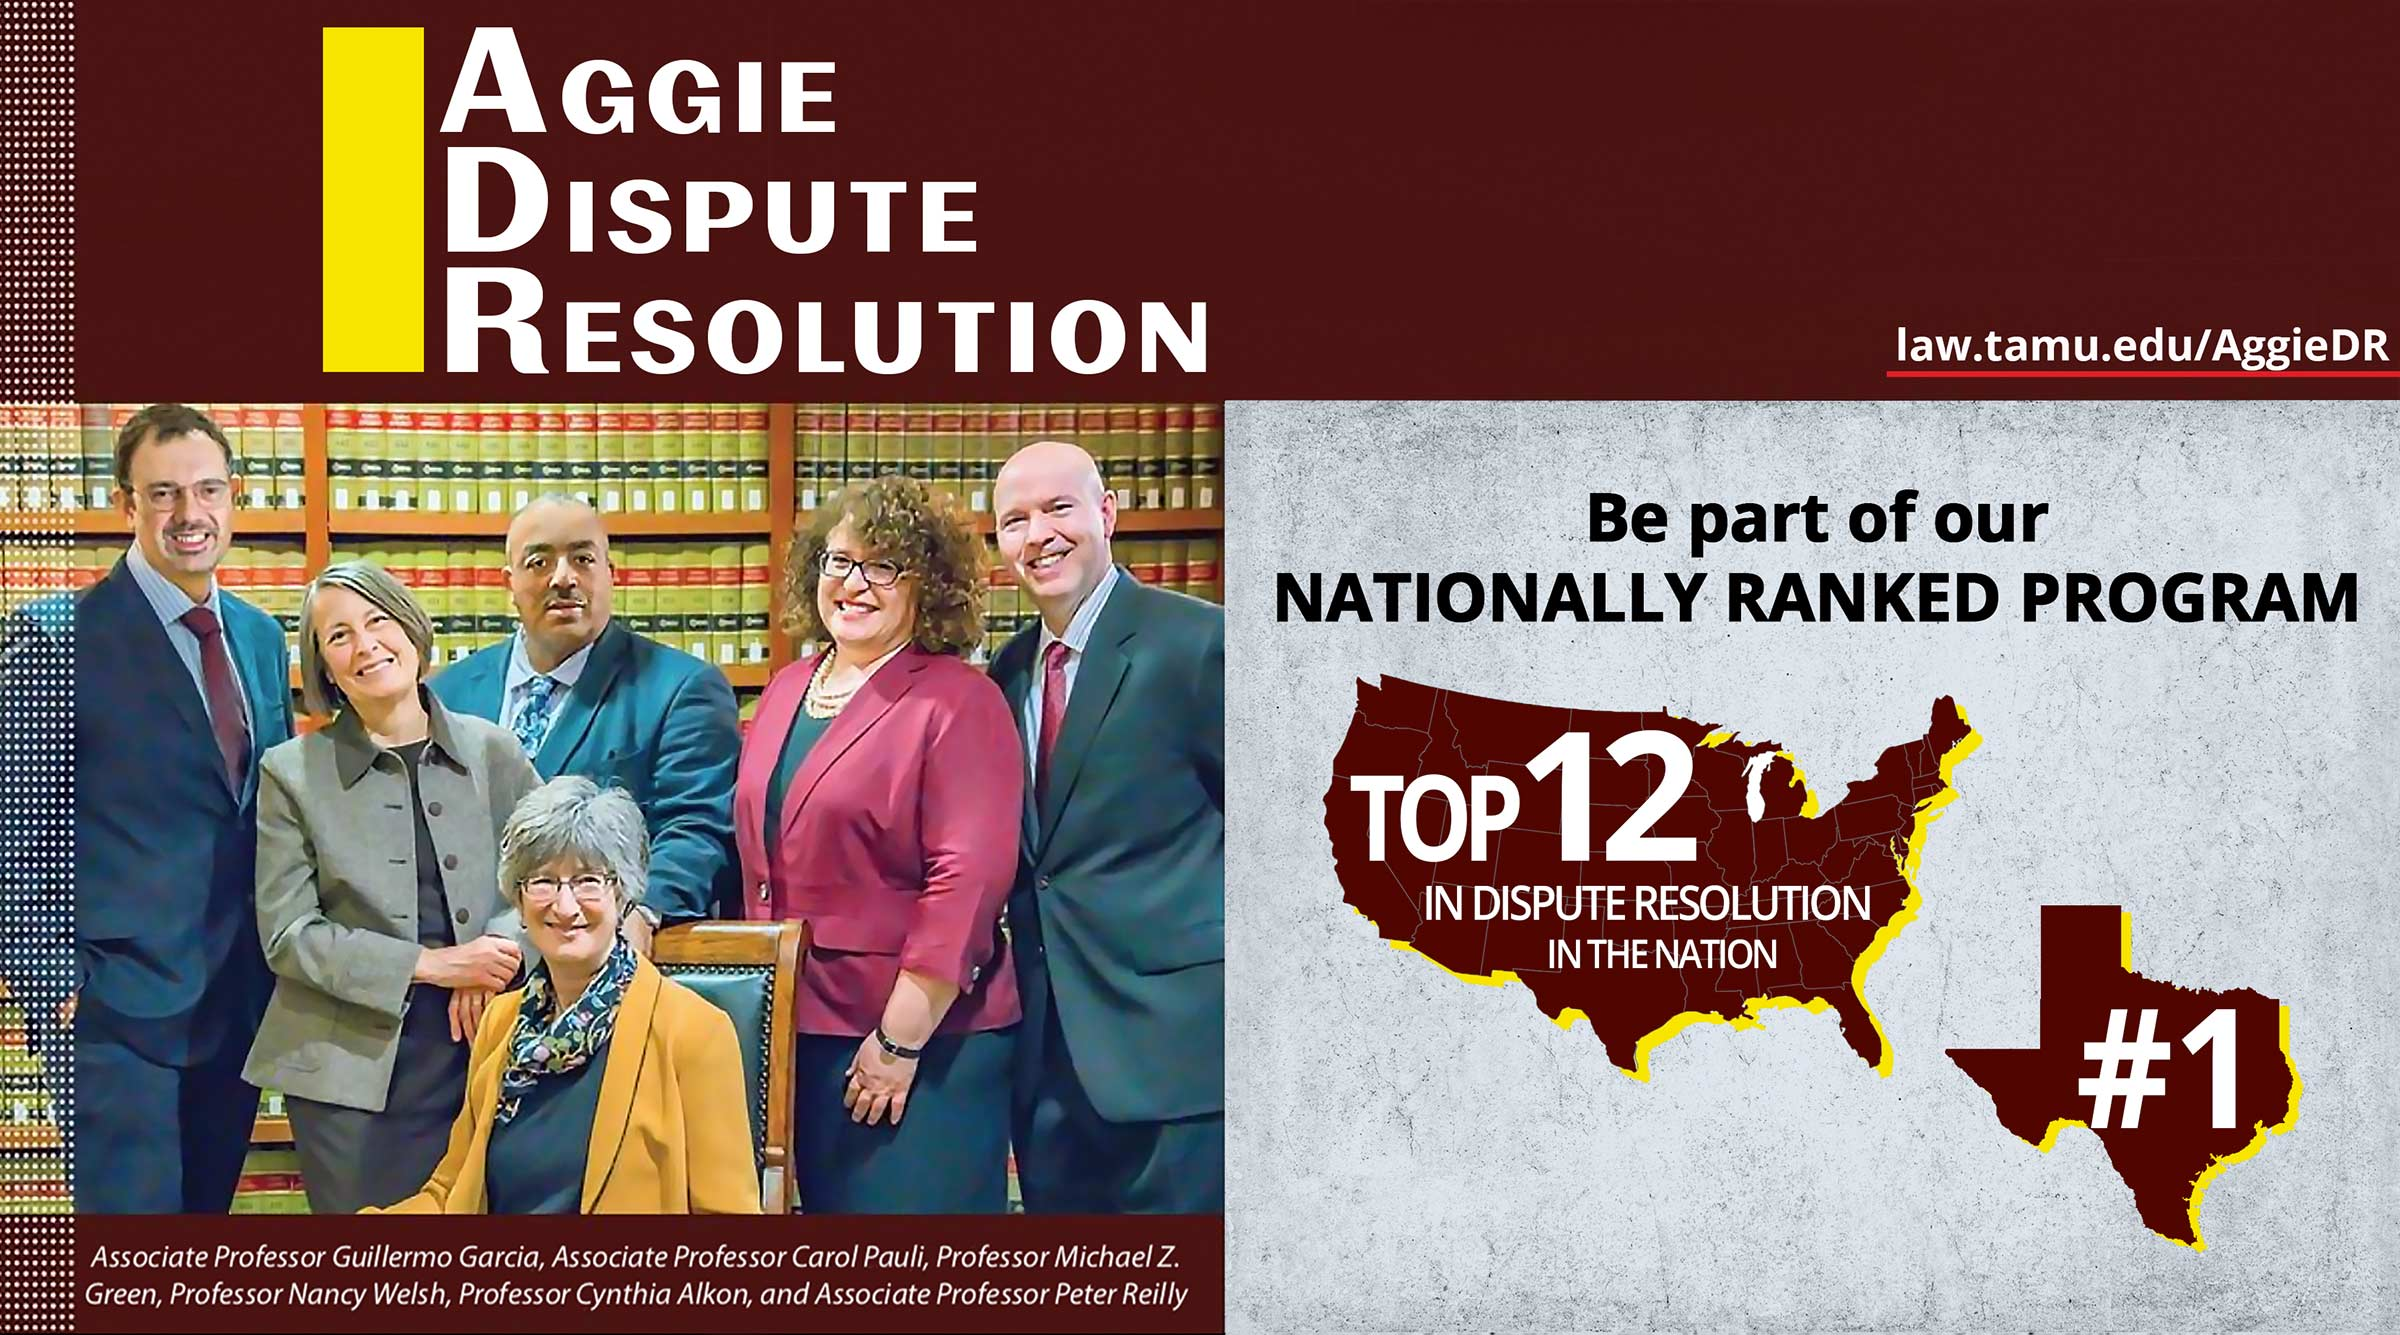 Aggie Dispute Resolution